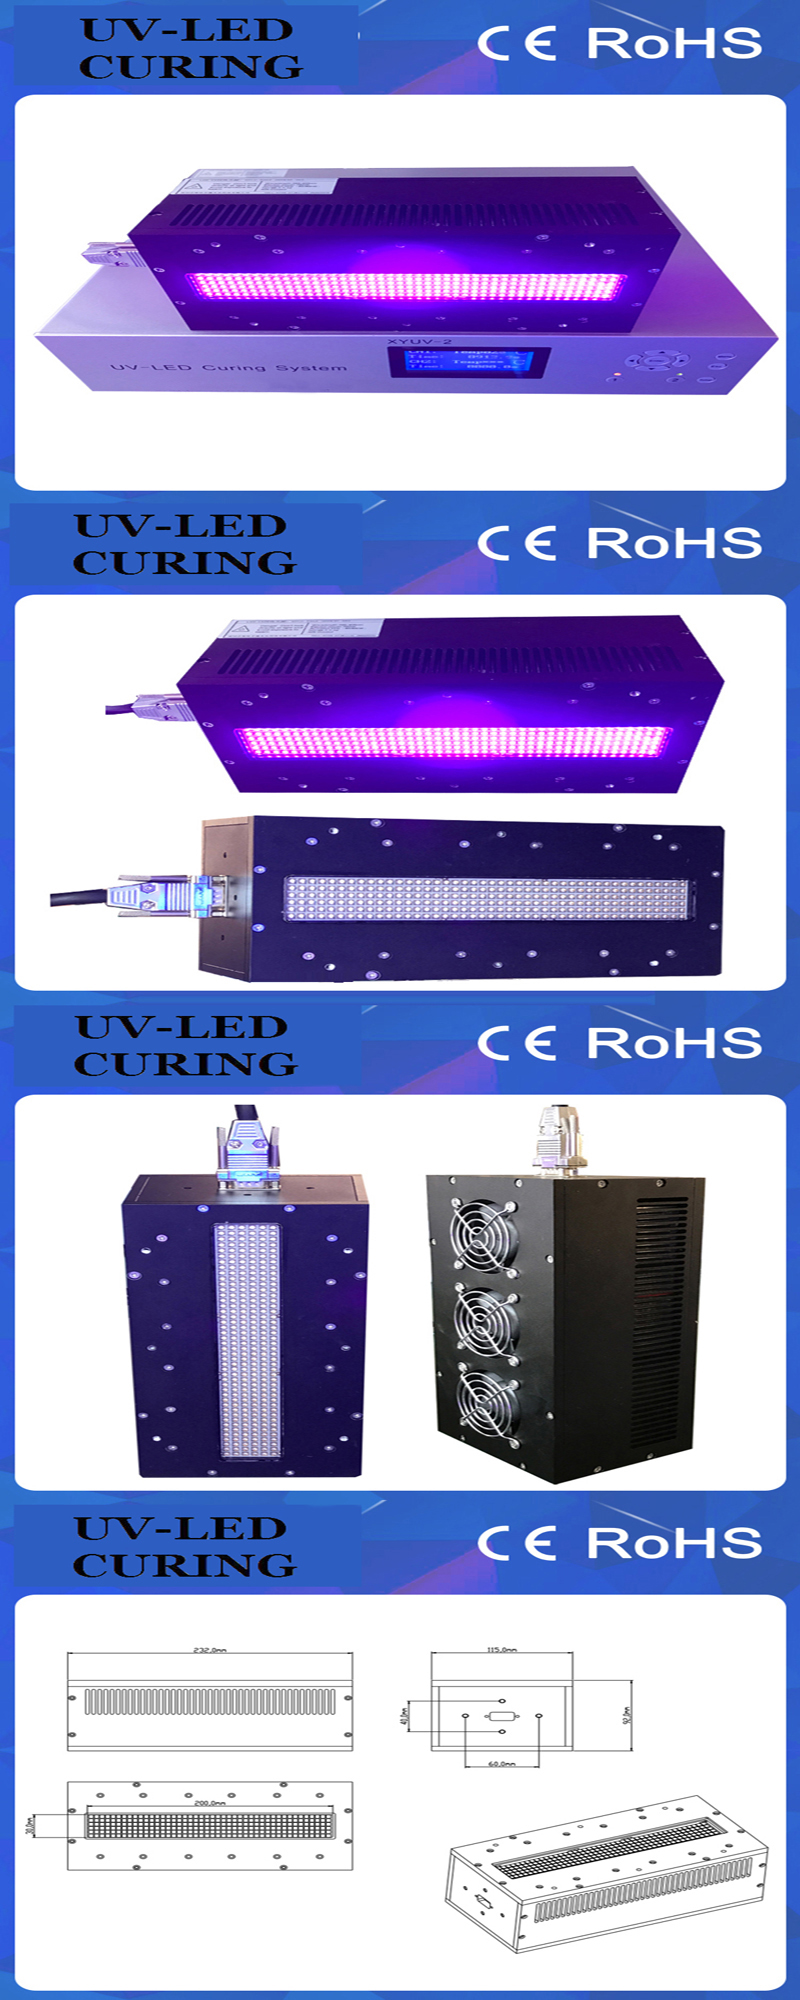 Energy Saving UV LED Curing Systems for Coating